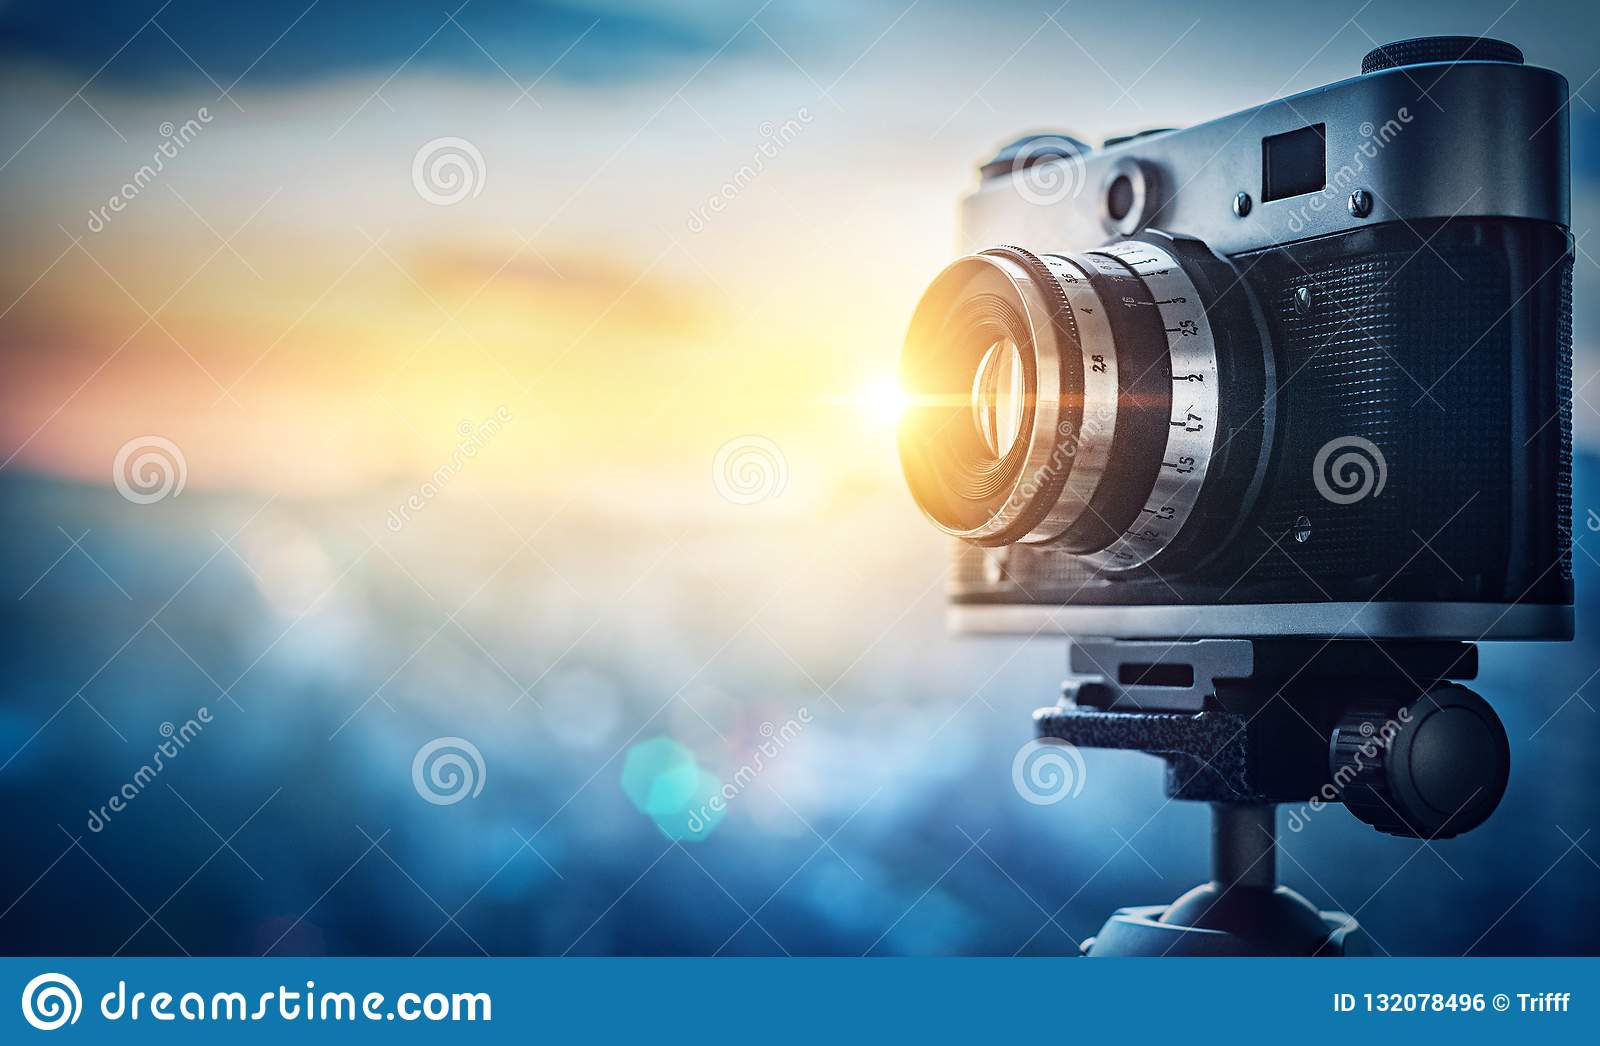 Camera On Night City Background Concept On The Topic Of Media Stock Photo Image Of Flare Camera 132078496